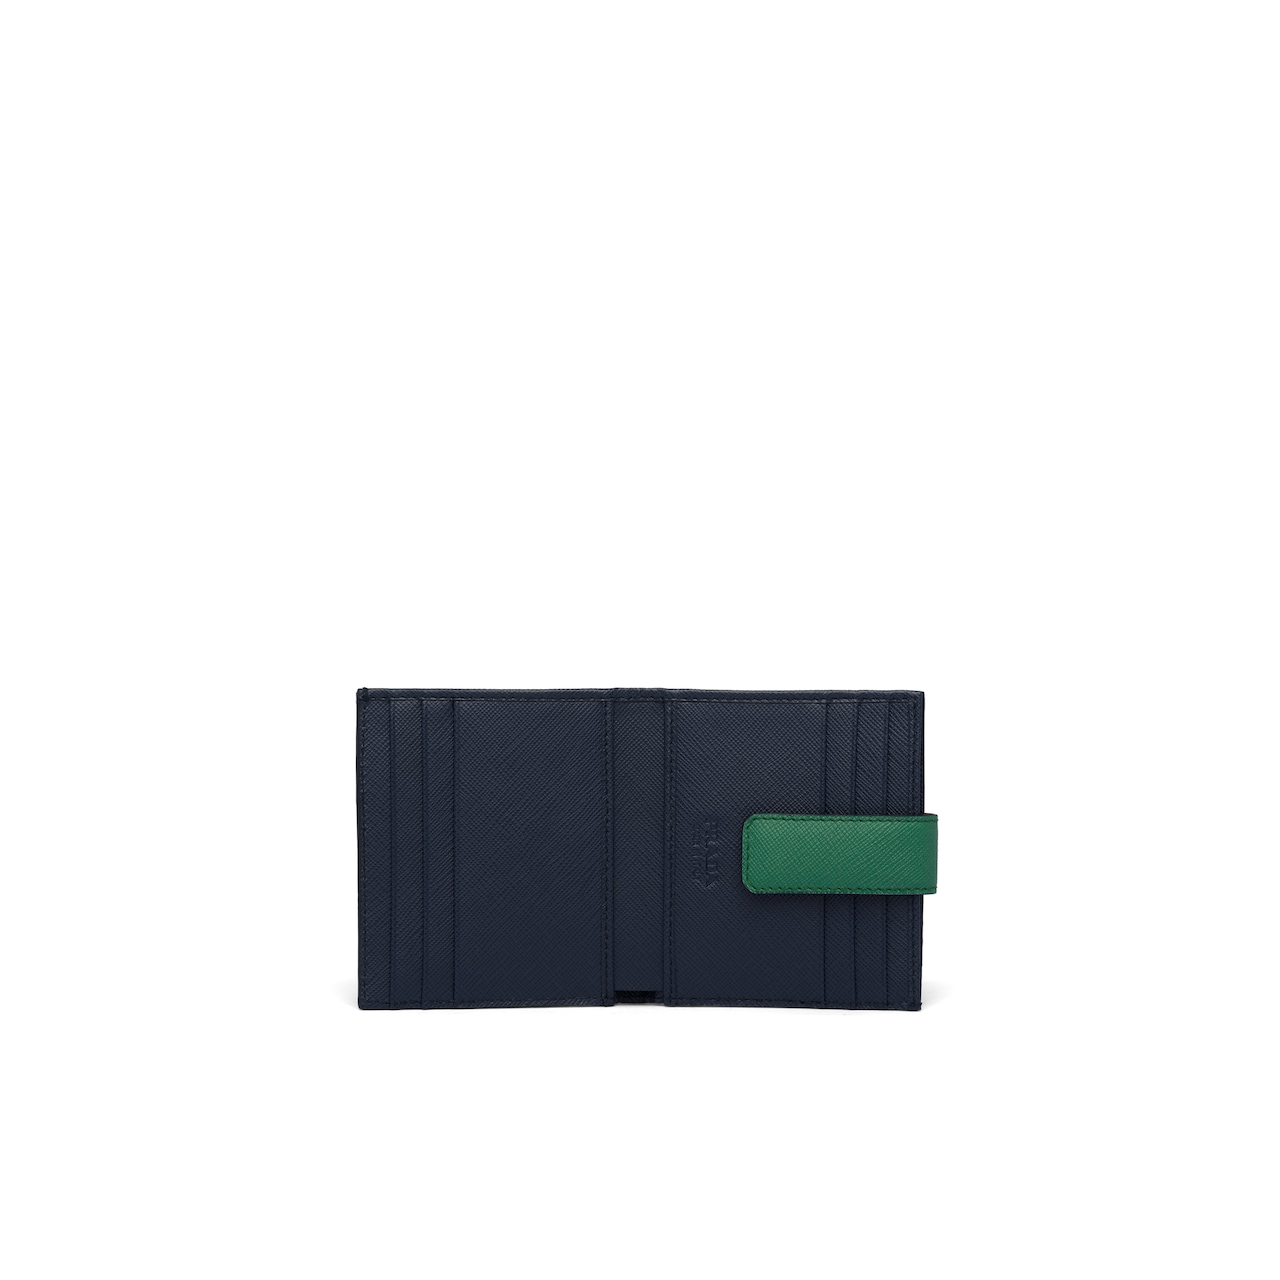 Saffiano leather card holder 4